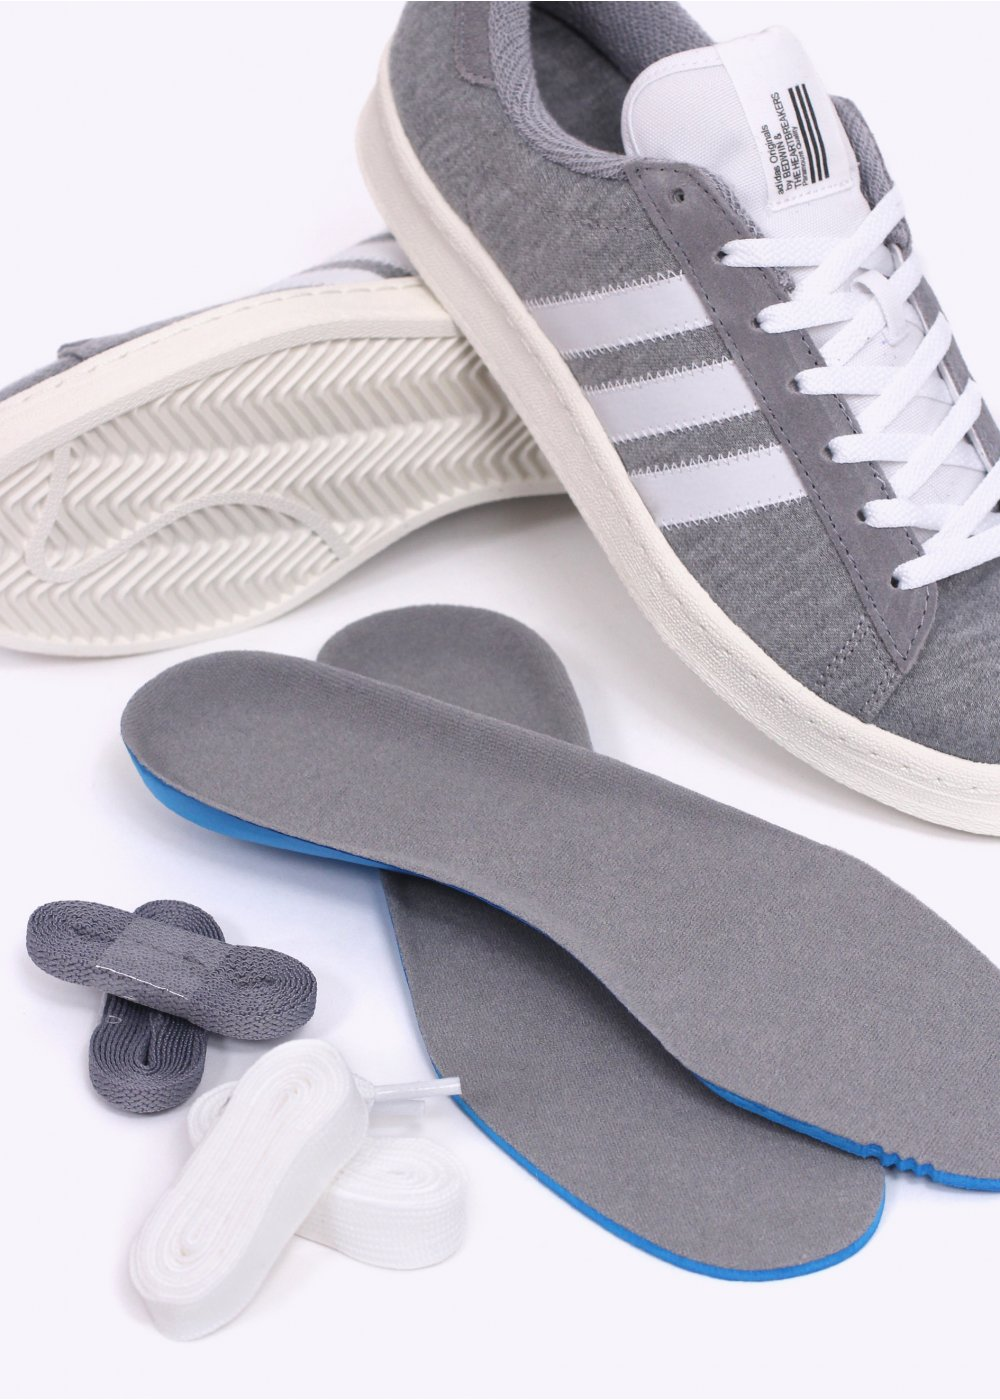 low cost b3117 b9492 ... c1ba0b2 Campus 80s Trainers - Medium Grey 3307dac6  Adidas Originals x  Bedwin The Heartbreakers Campus 80s In Grey Avail – 9f24160 Feature Sneaker  ...